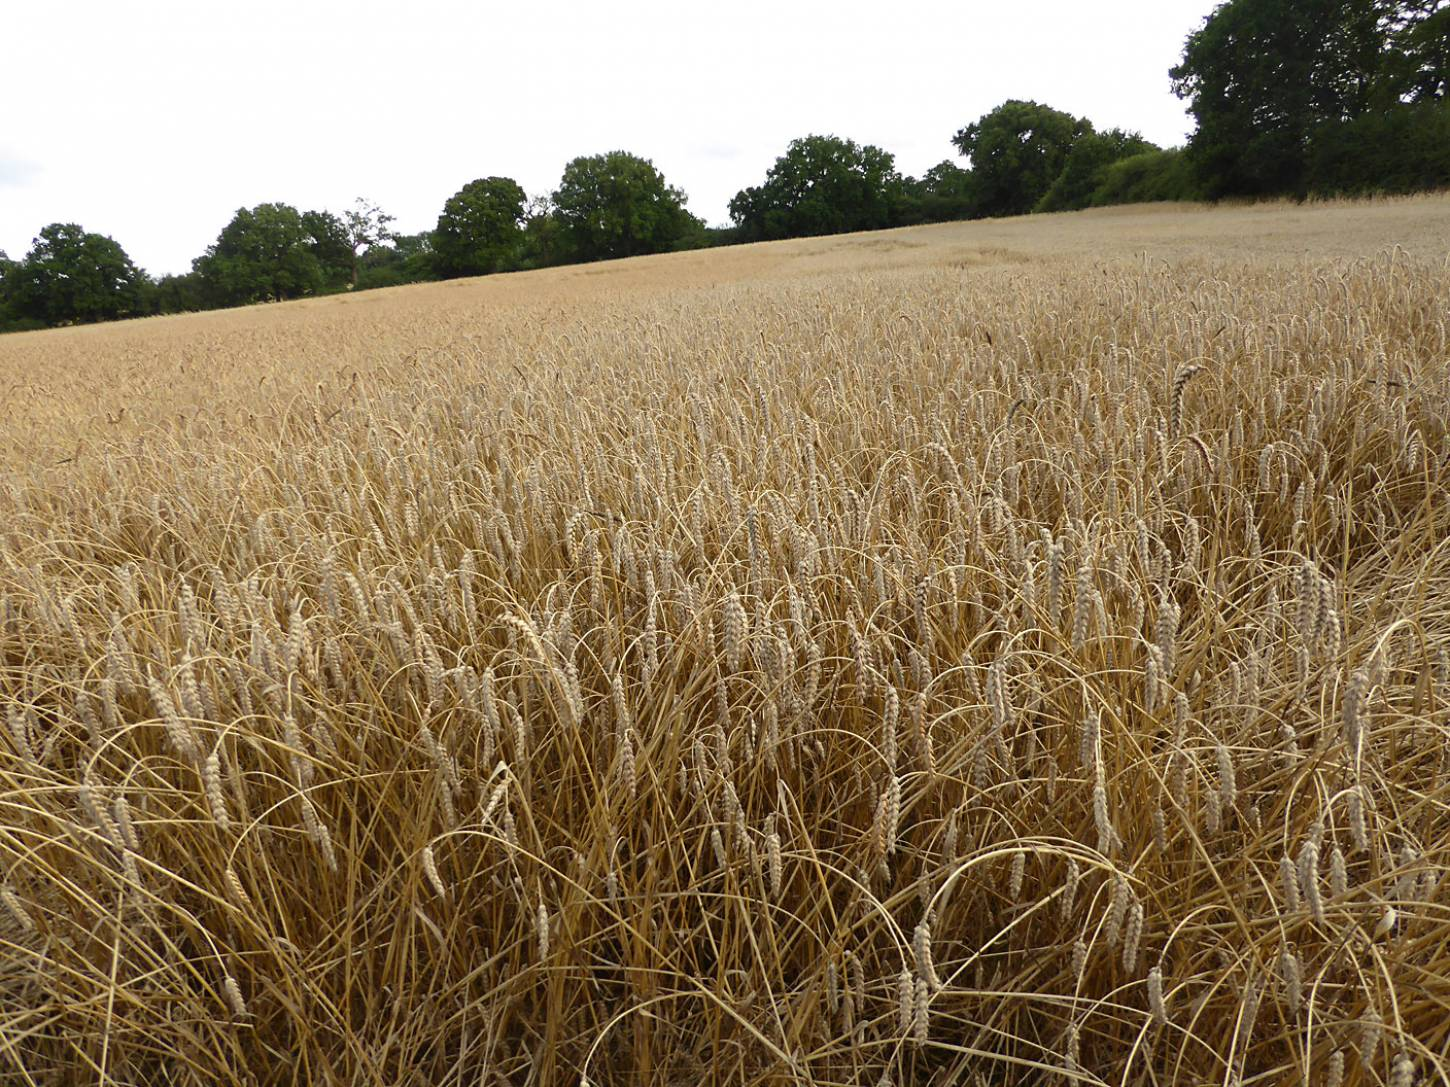 Ble de Haie, farm review pre-harvest '17 - 6:31pm&nbsp;1<sup>st</sup>&nbsp;Aug.&nbsp;'17  <a href='http://maps.google.com/?t=h&q=51.209500,-0.086397&z=18&output=embed' target=_blank><img src='http://www.brockwell-bake.org.uk/img/marker.png' style='border:none;vertical-align:top' height=16px></a>